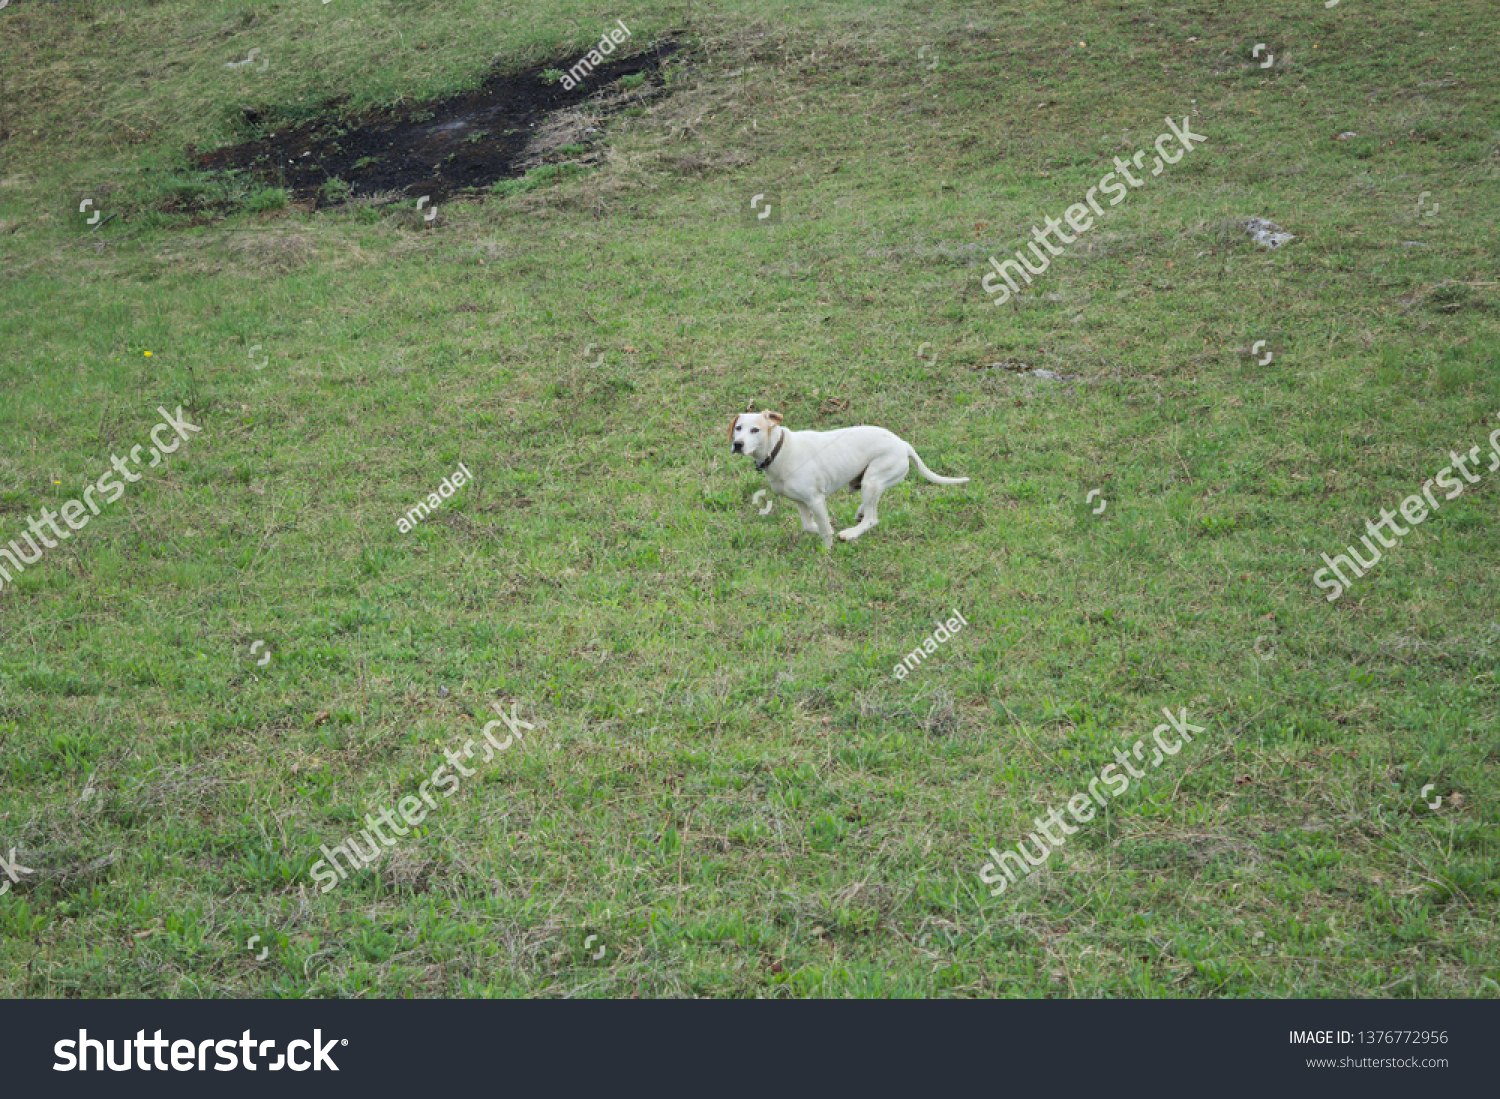 stock-photo-young-dog-running-over-meado